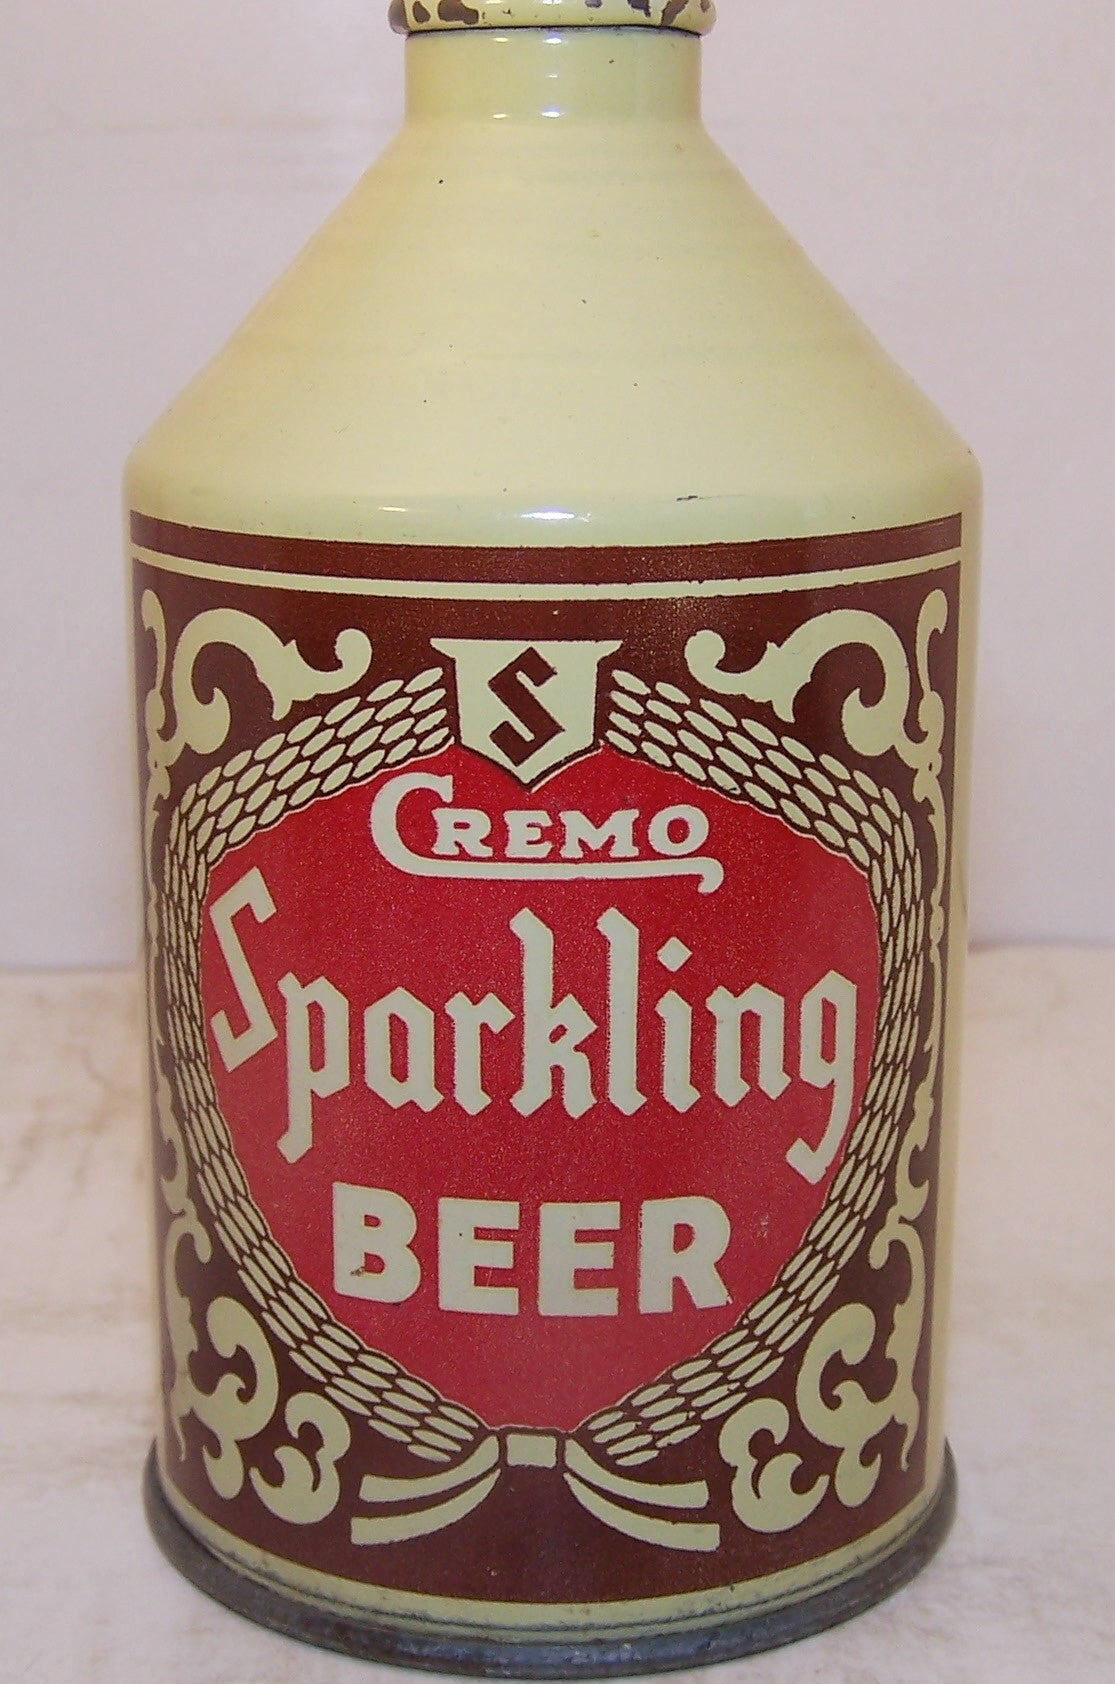 Cremo Sparkling Beer, USBC 192-33 Grade 1/1+ Sold on 06/03/17